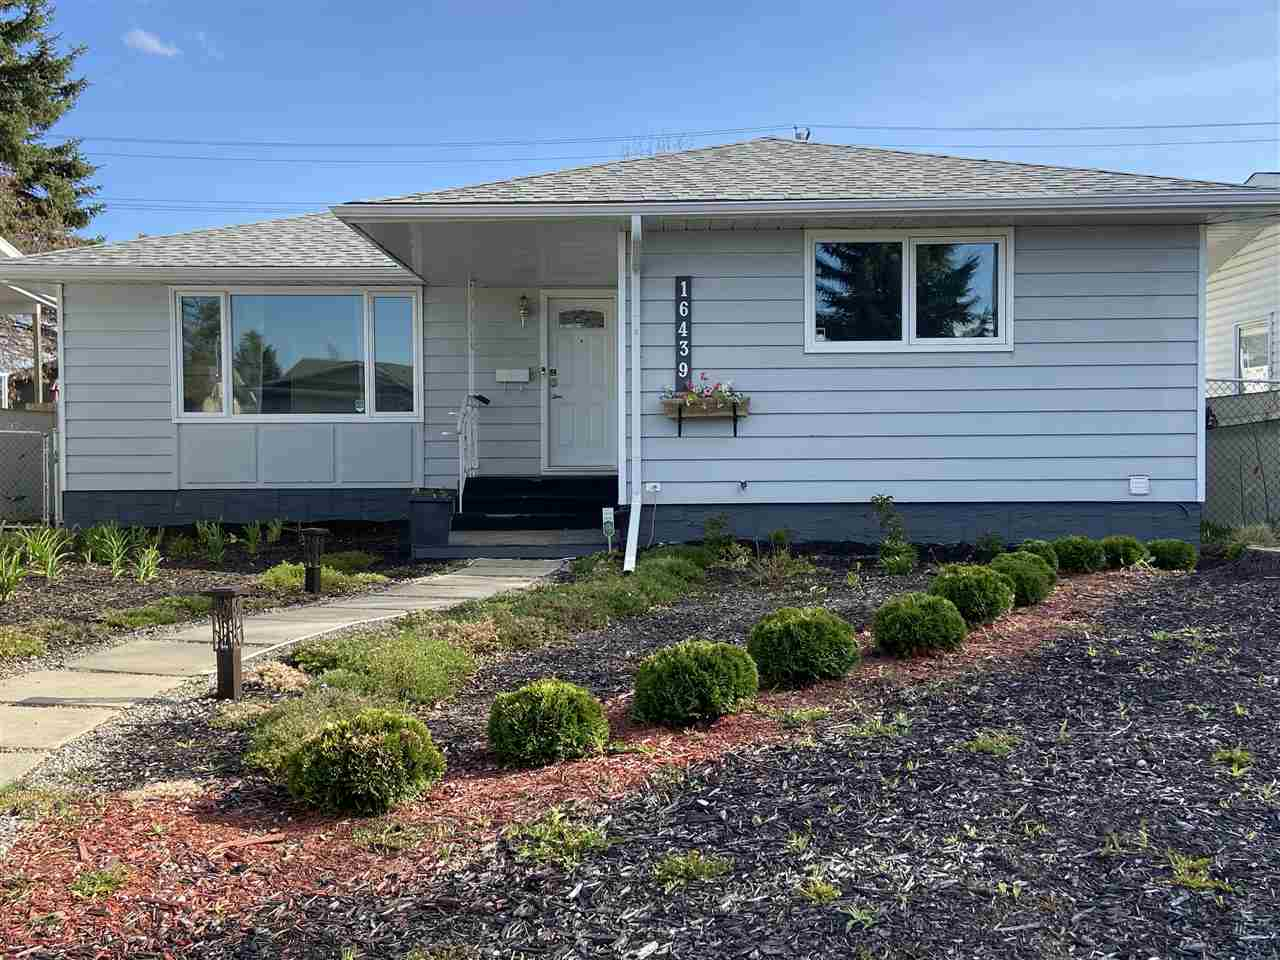 NEW $50,000 SOUTH FACING GREENHOUSE/ALL SEASONS ROOM ADDITION with FIREPLACE, WATER HOOK UP and DRAIN!!! Welcome to this cute bungalow in Elmwood, just a half block from schools. Lots of upgrades in the last couple of years. NEW WINDOWS (2017), NEW SHINGLES on the house (Dec 2017), NEW KITCHEN (2017), NEW FLOORING (2017), and built in cabinet in dining room. 3 bedrooms up, full bathroom and 2 pc ensuite. NEWER LIGHTING, NEW PANIT and NEW OUTSIDE and INSIDE DOORS. The basement is partially developed. There is a double detached garage, fully fenced and RV GATE for RV STORAGE. Located close to schools, West Edmonton Mall, Misericordia Hospital, public transportation, and major thoroughfares.